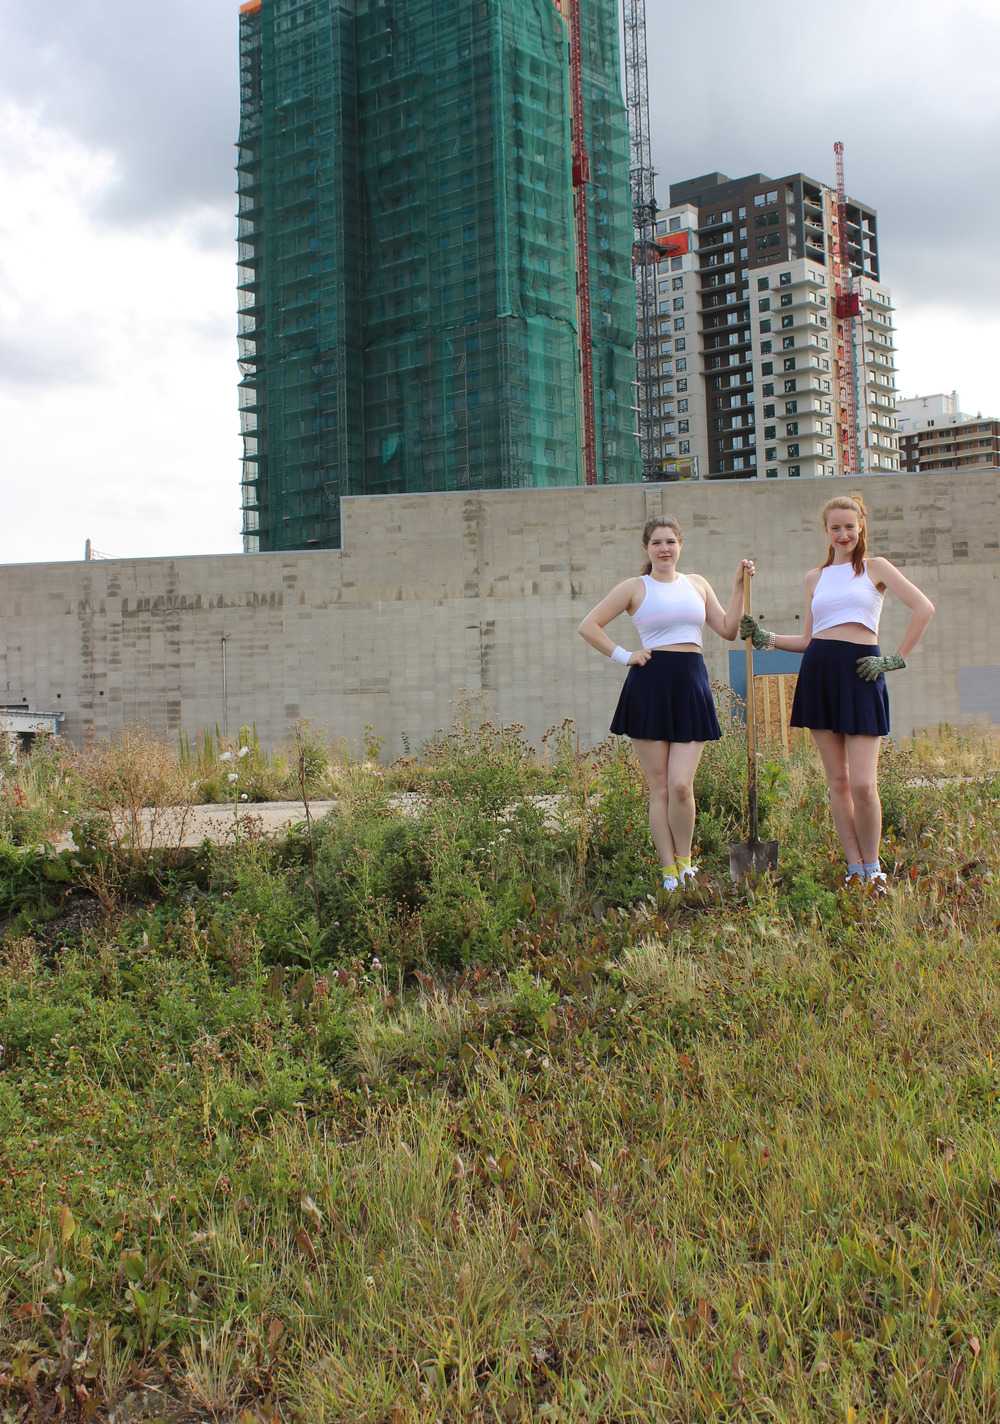 Brookfield Residential, Alyson Davies and Marie Winters, Performance and Digital Documentation, 2015.